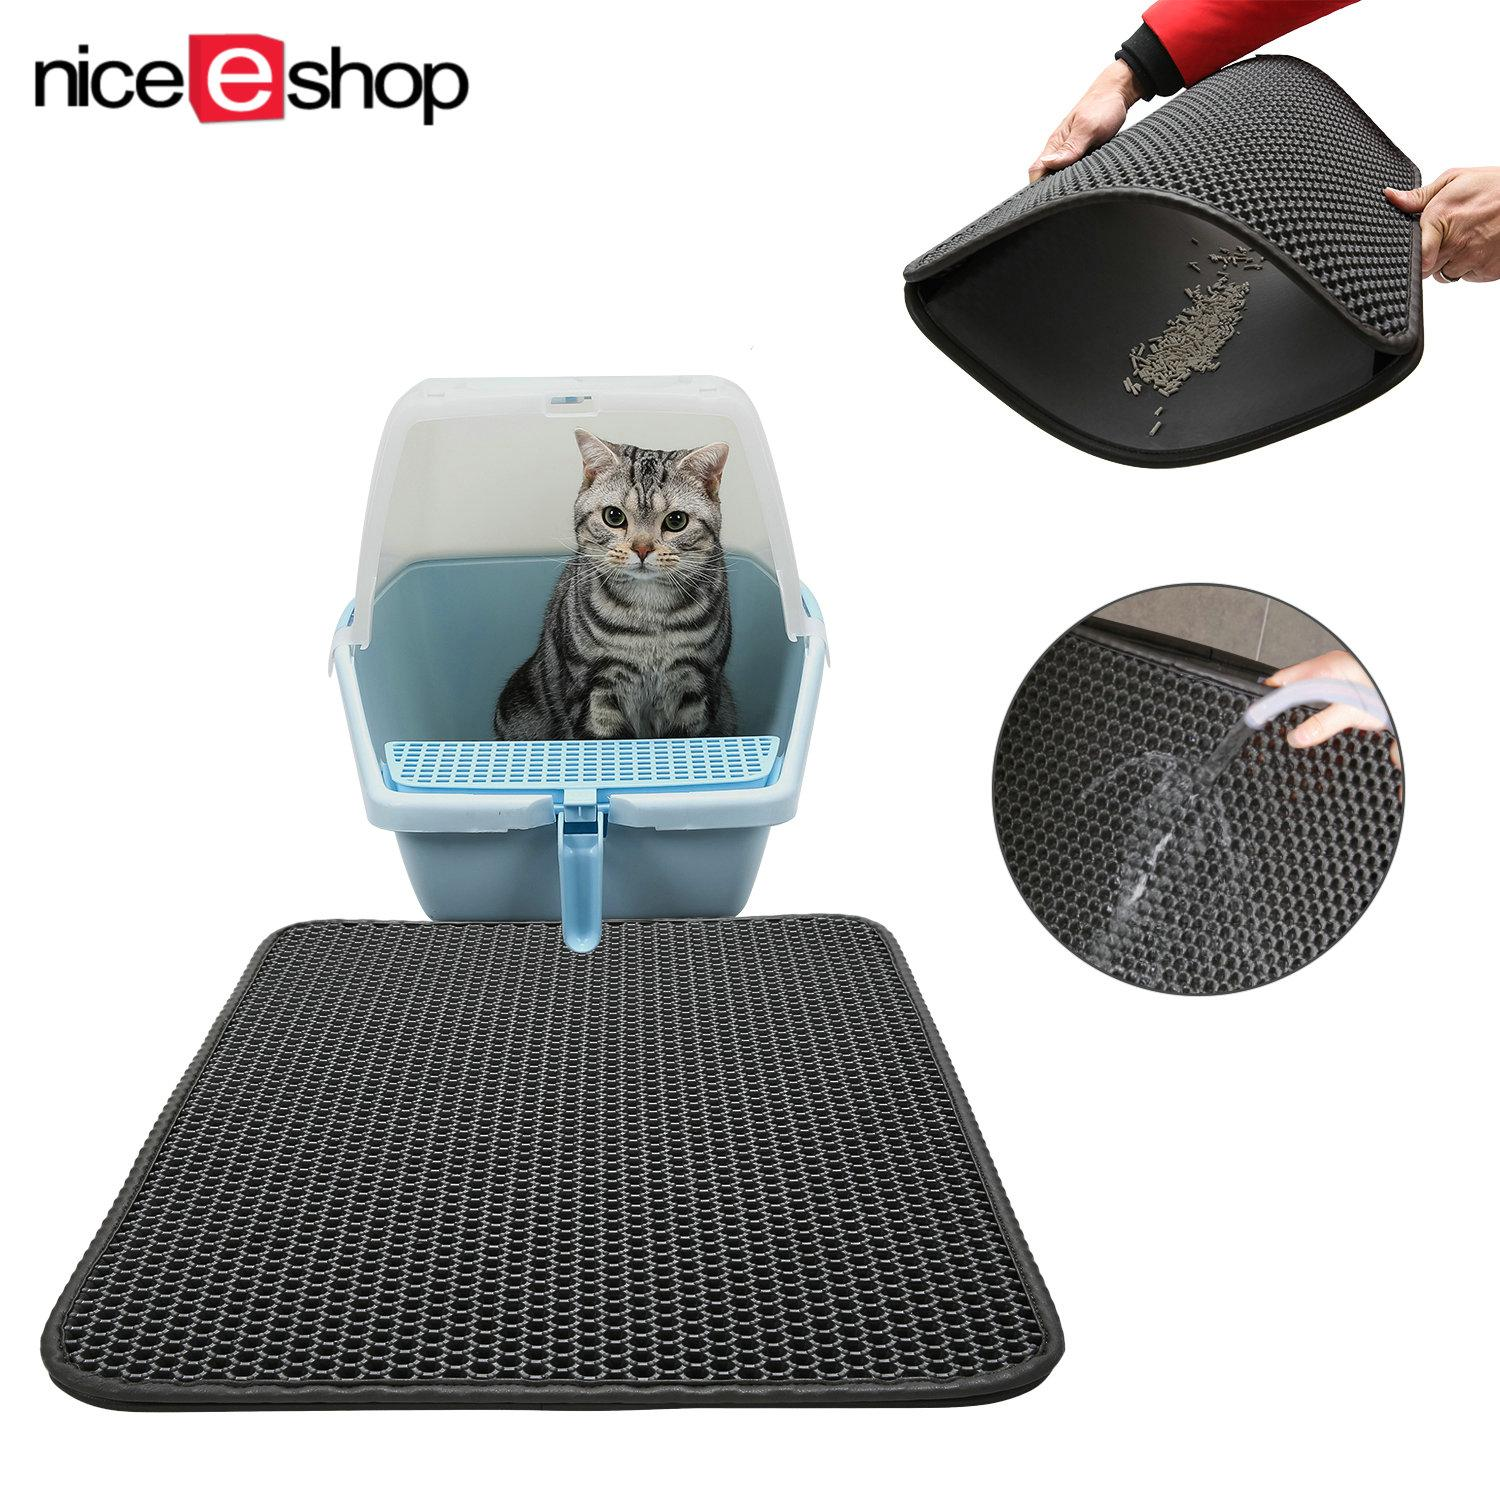 Niceeshop Water-Proof Cat Litter Mat Double-Layer Honeycomb Cat Feeding Mat Litter-Trapping,size 40x50cm By Nicee Shop.